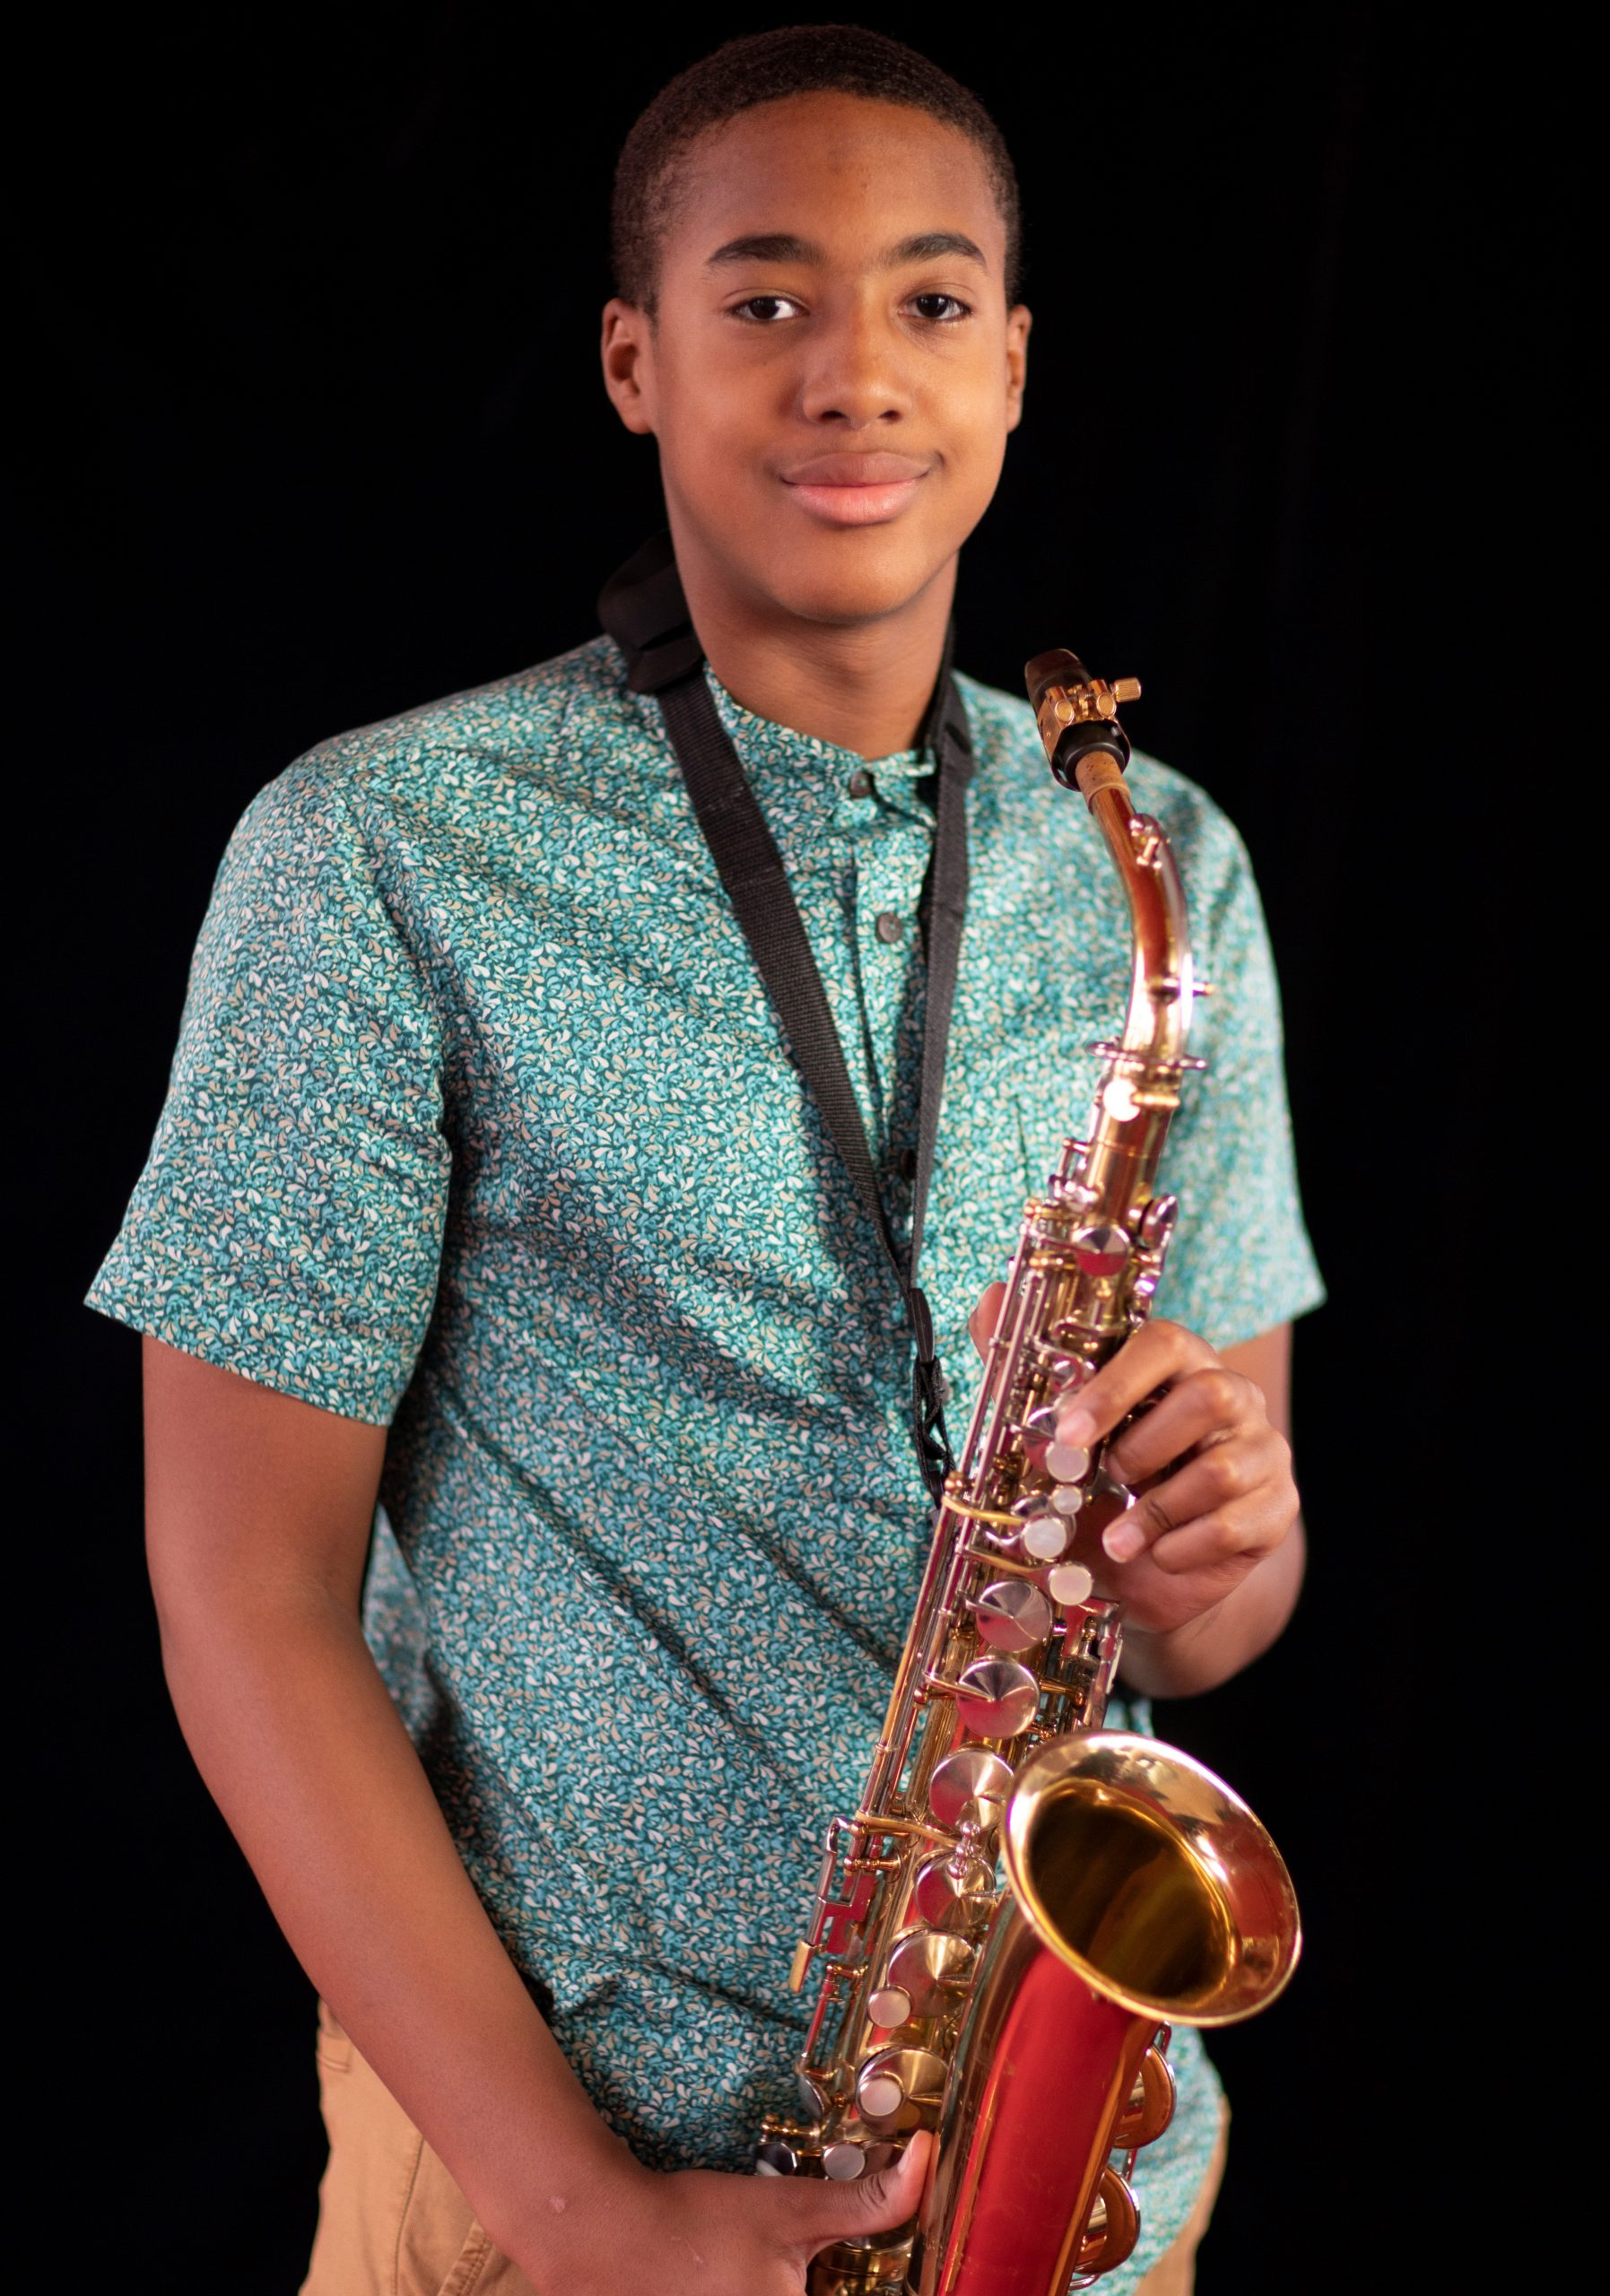 Toku Ogwang, one of the students selected for the jazz programme is pictured with his saxophone.